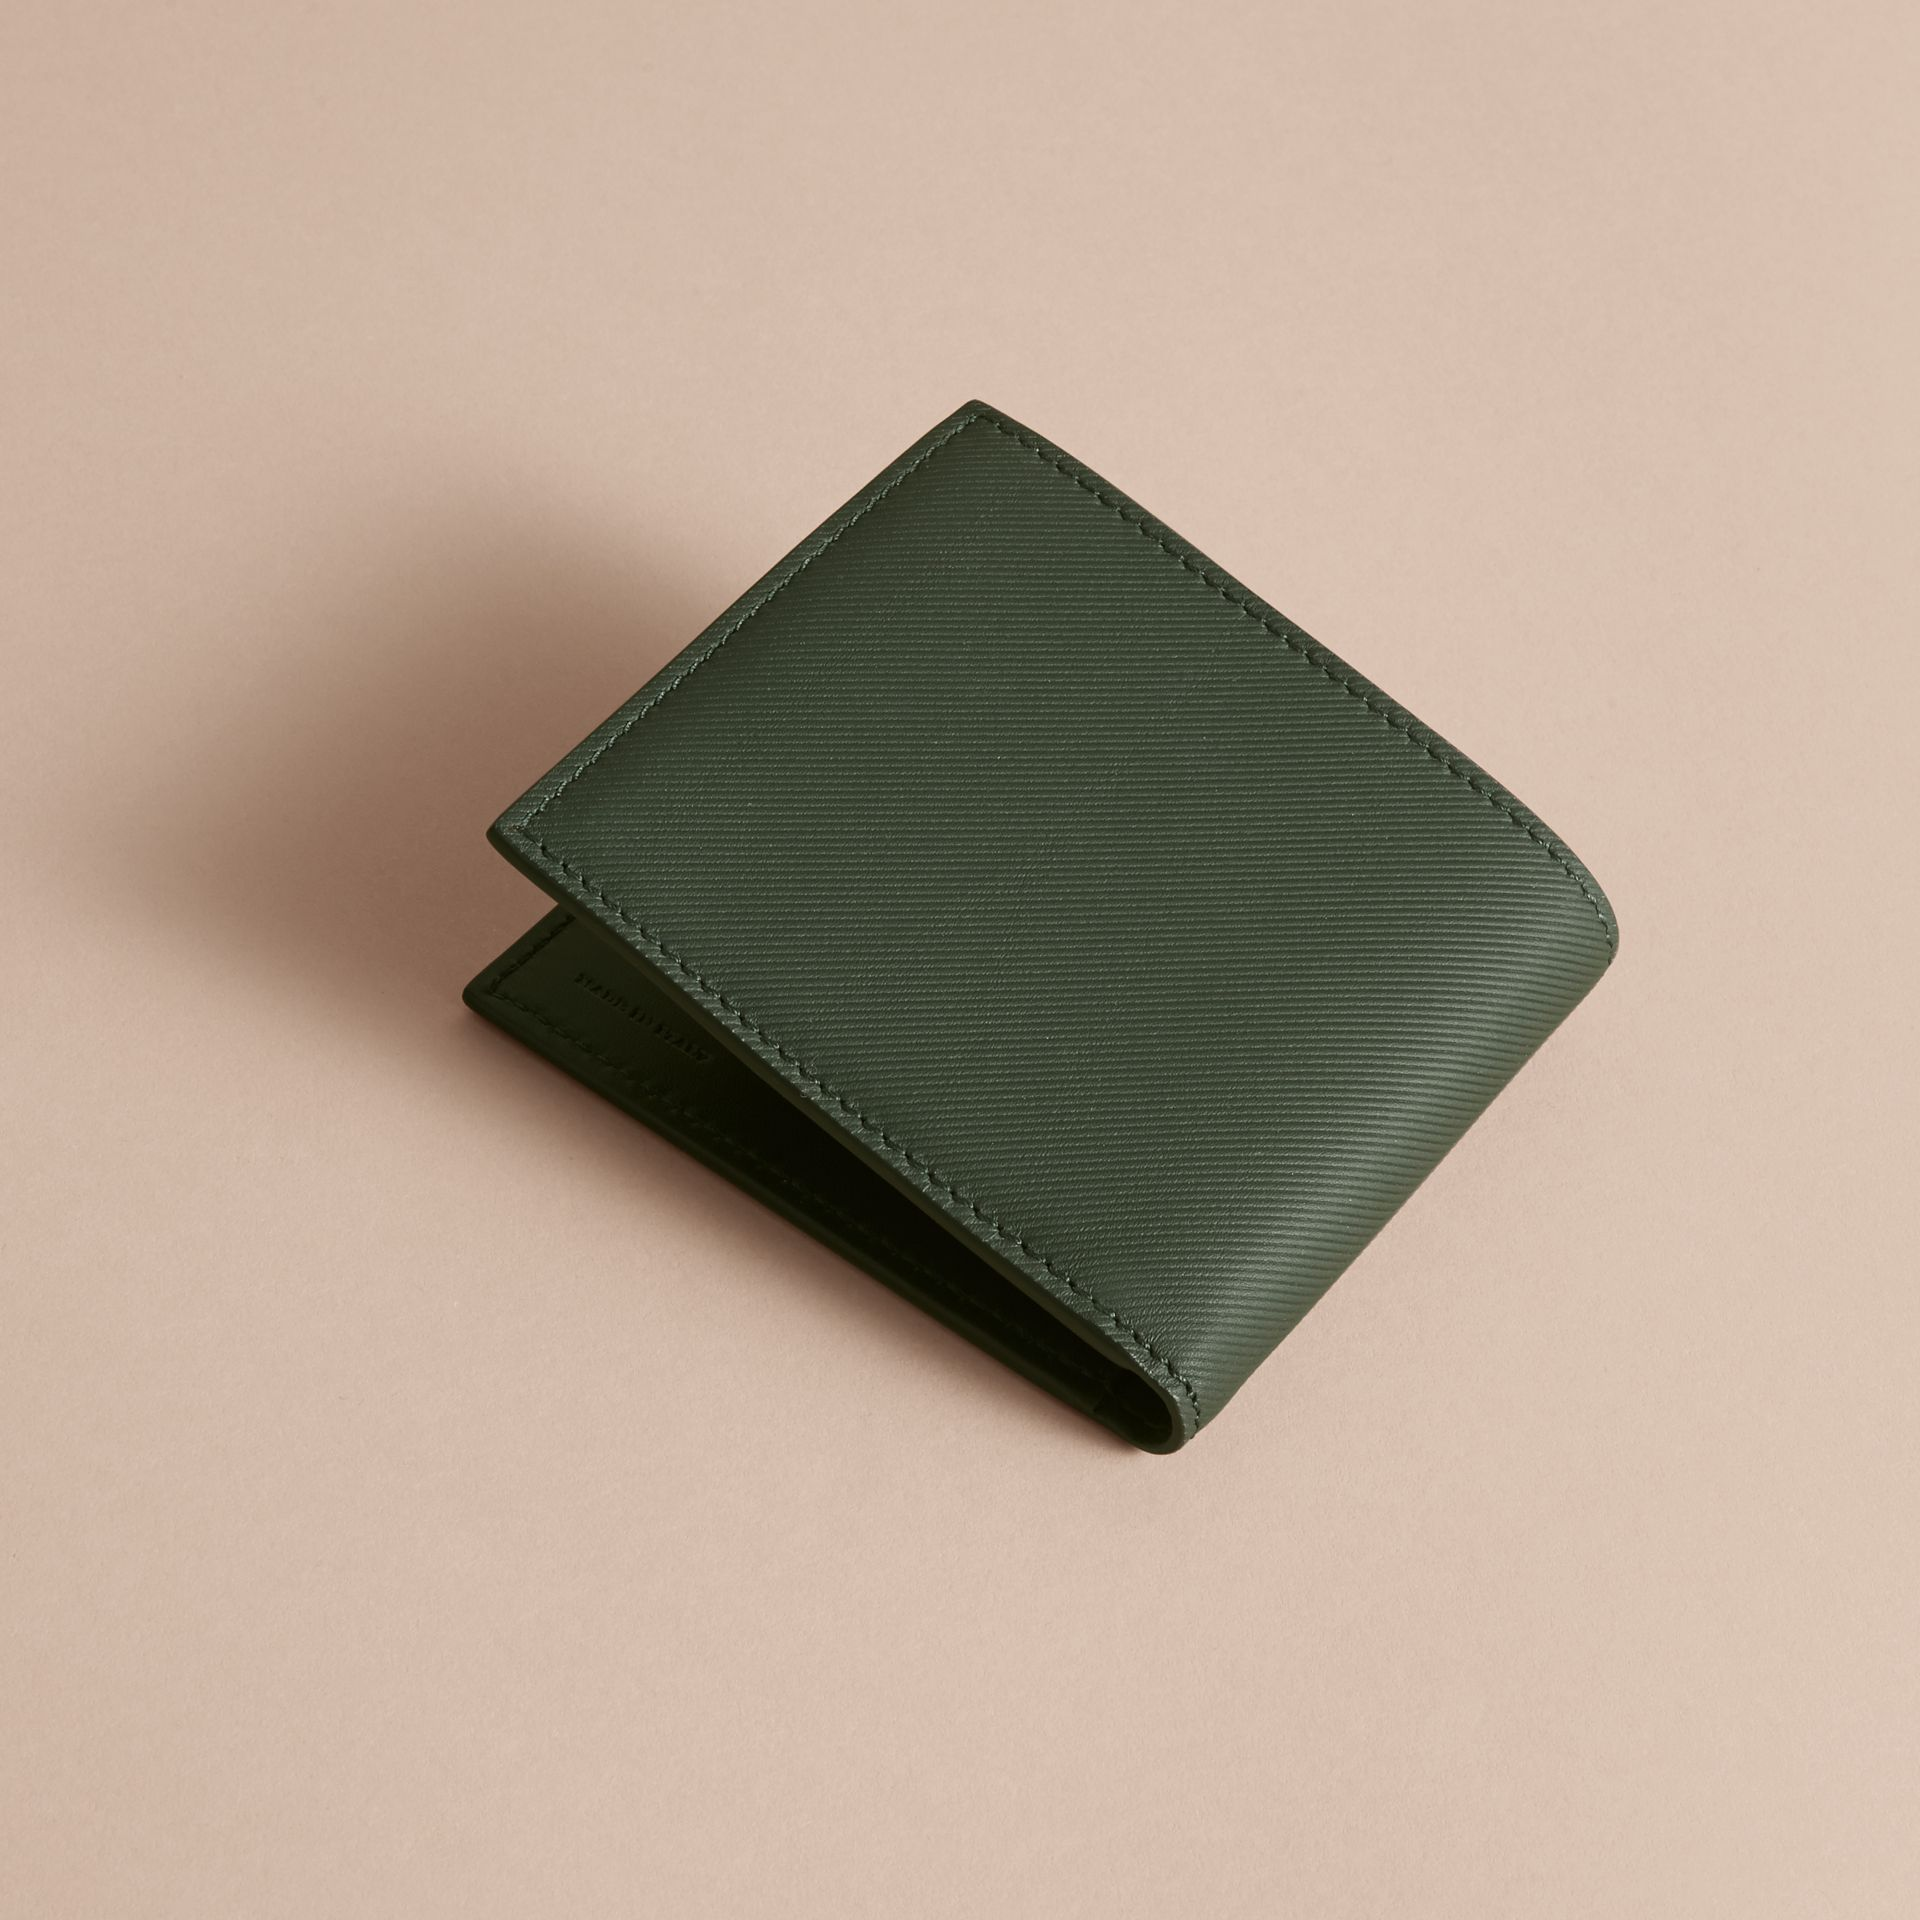 Trench Leather International Bifold Wallet in Dark Forest Green - Men | Burberry Hong Kong - gallery image 4